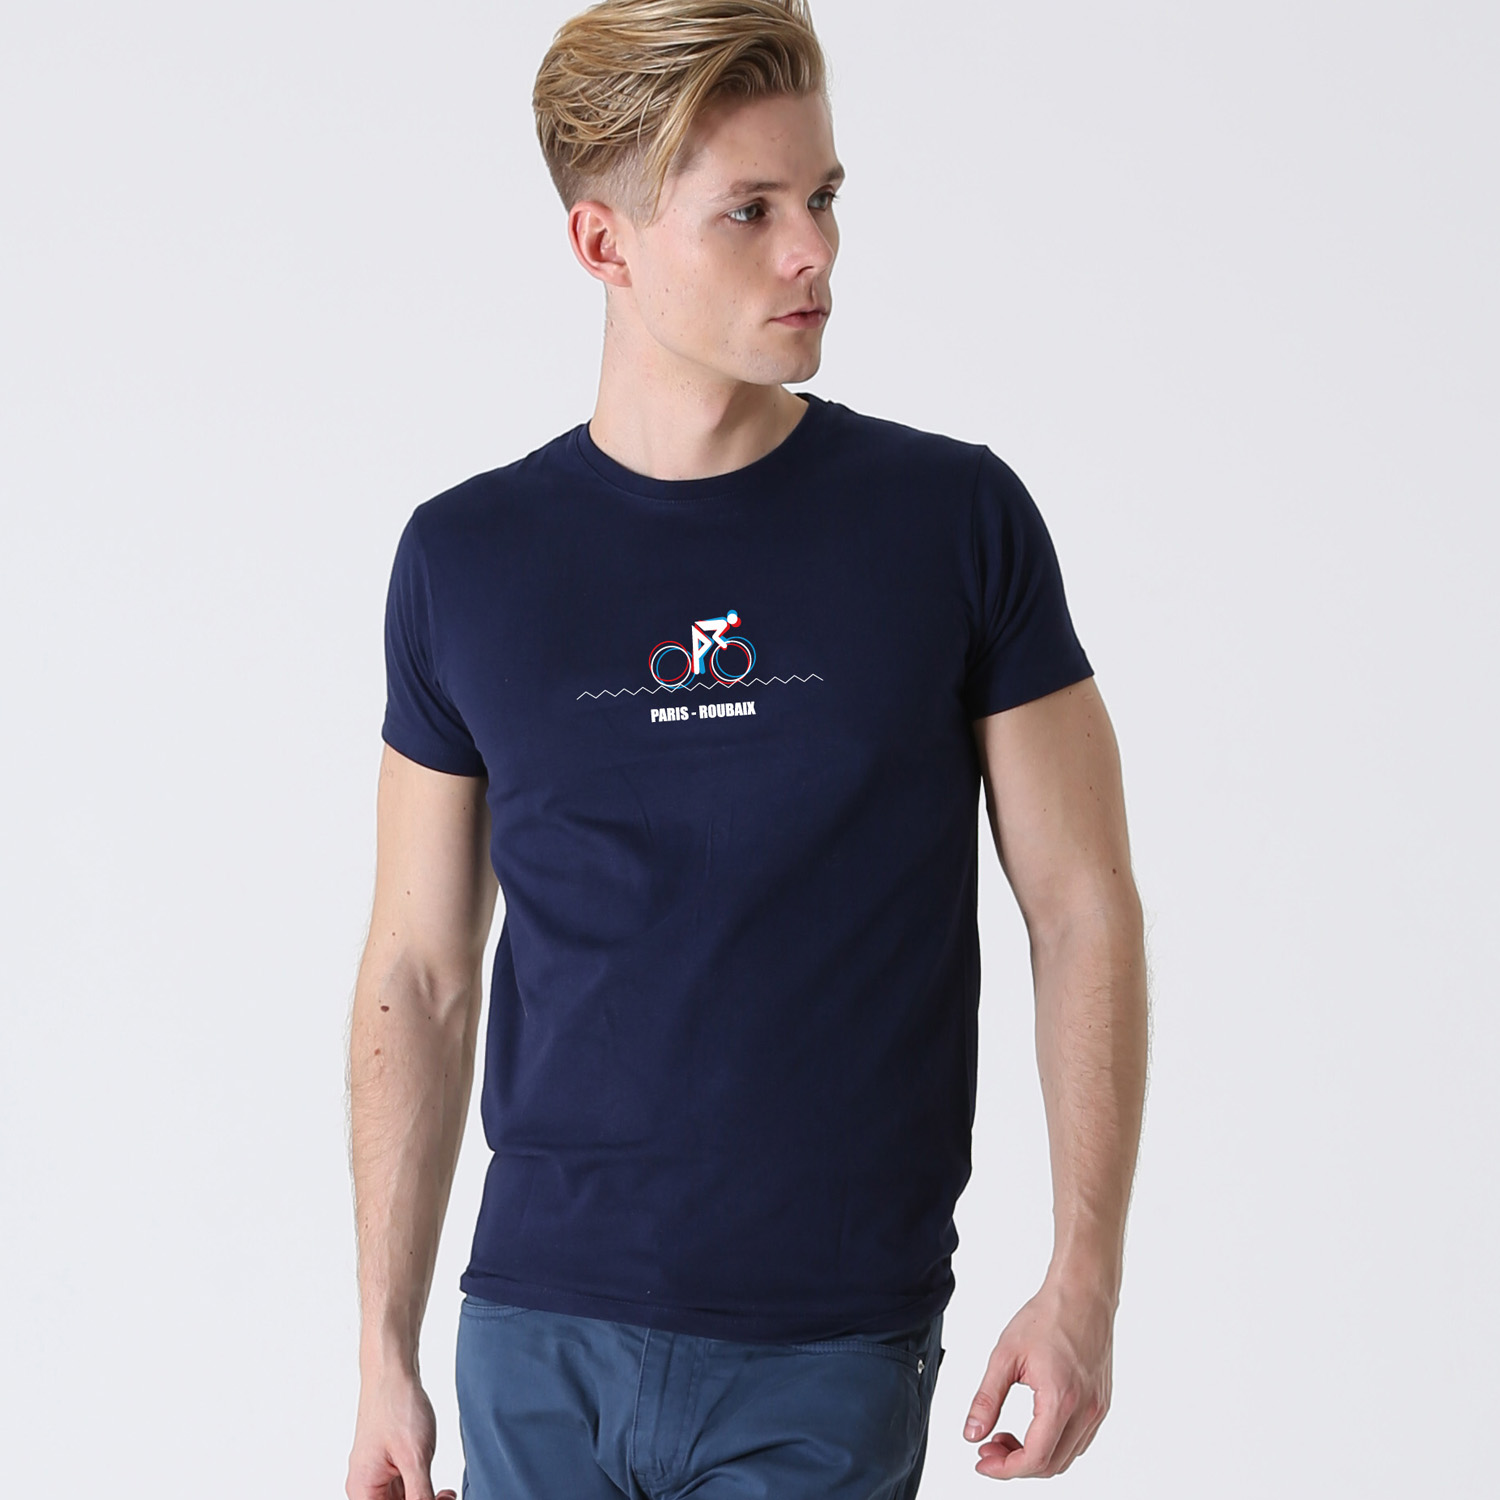 T-lab-Mens-Paris-Roubaix Mens-t-shirt-model